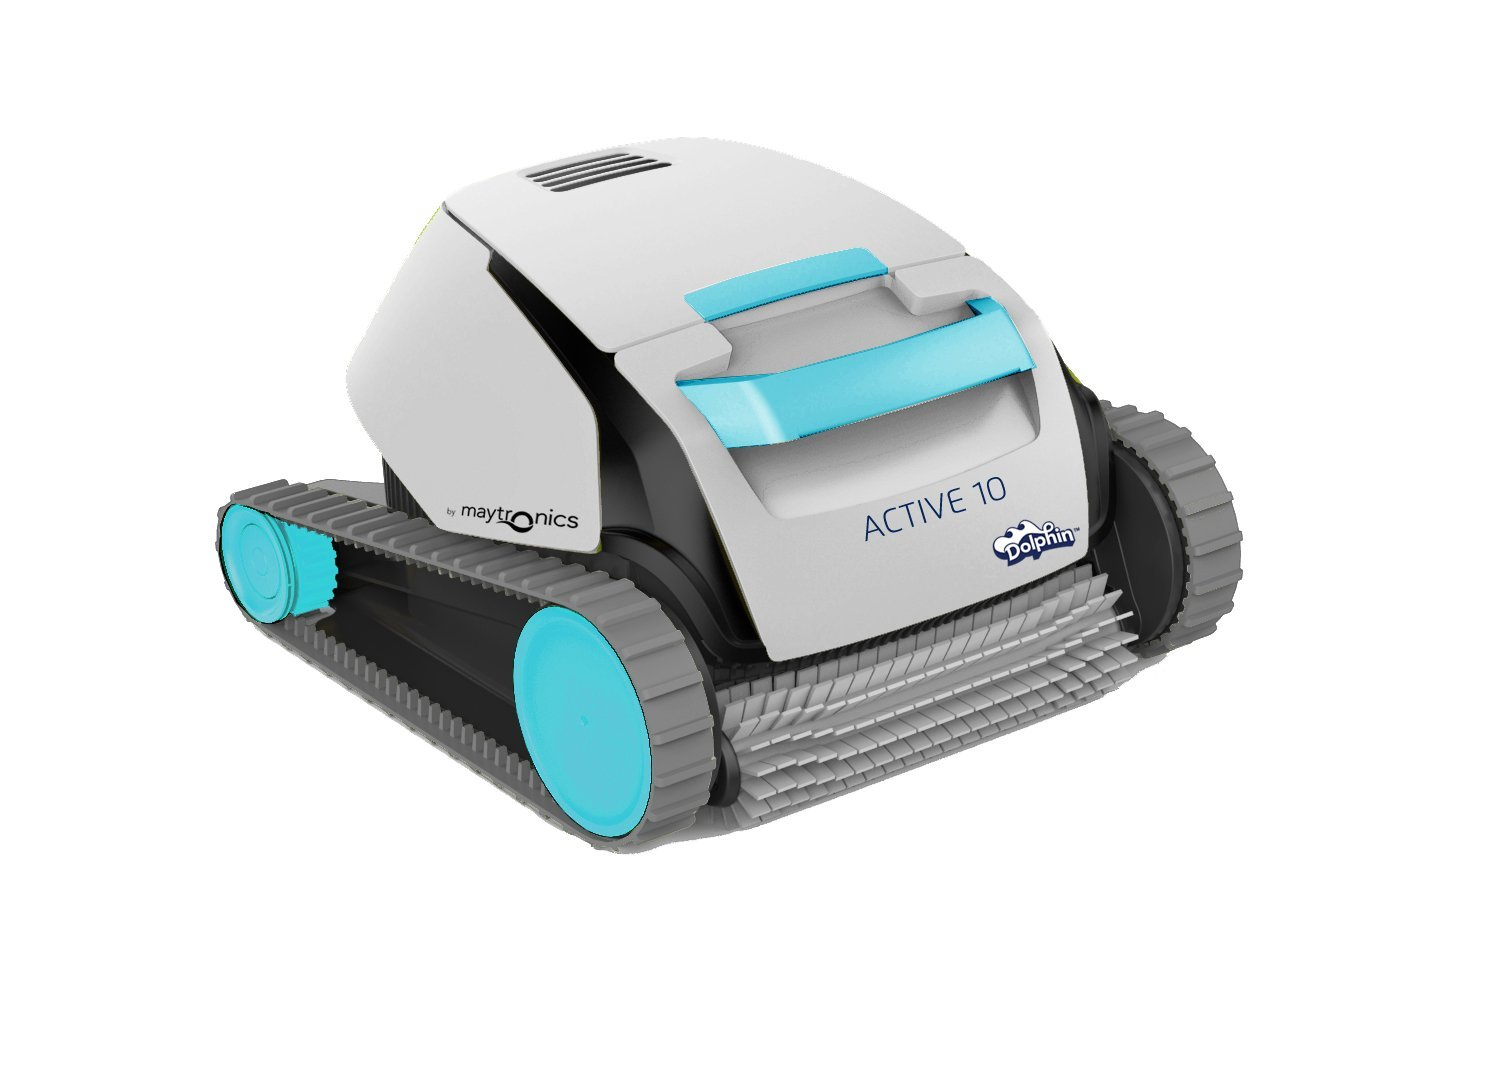 Top 10 best automatic pool cleaner reviews list and for Pool cleaner reviews 2013